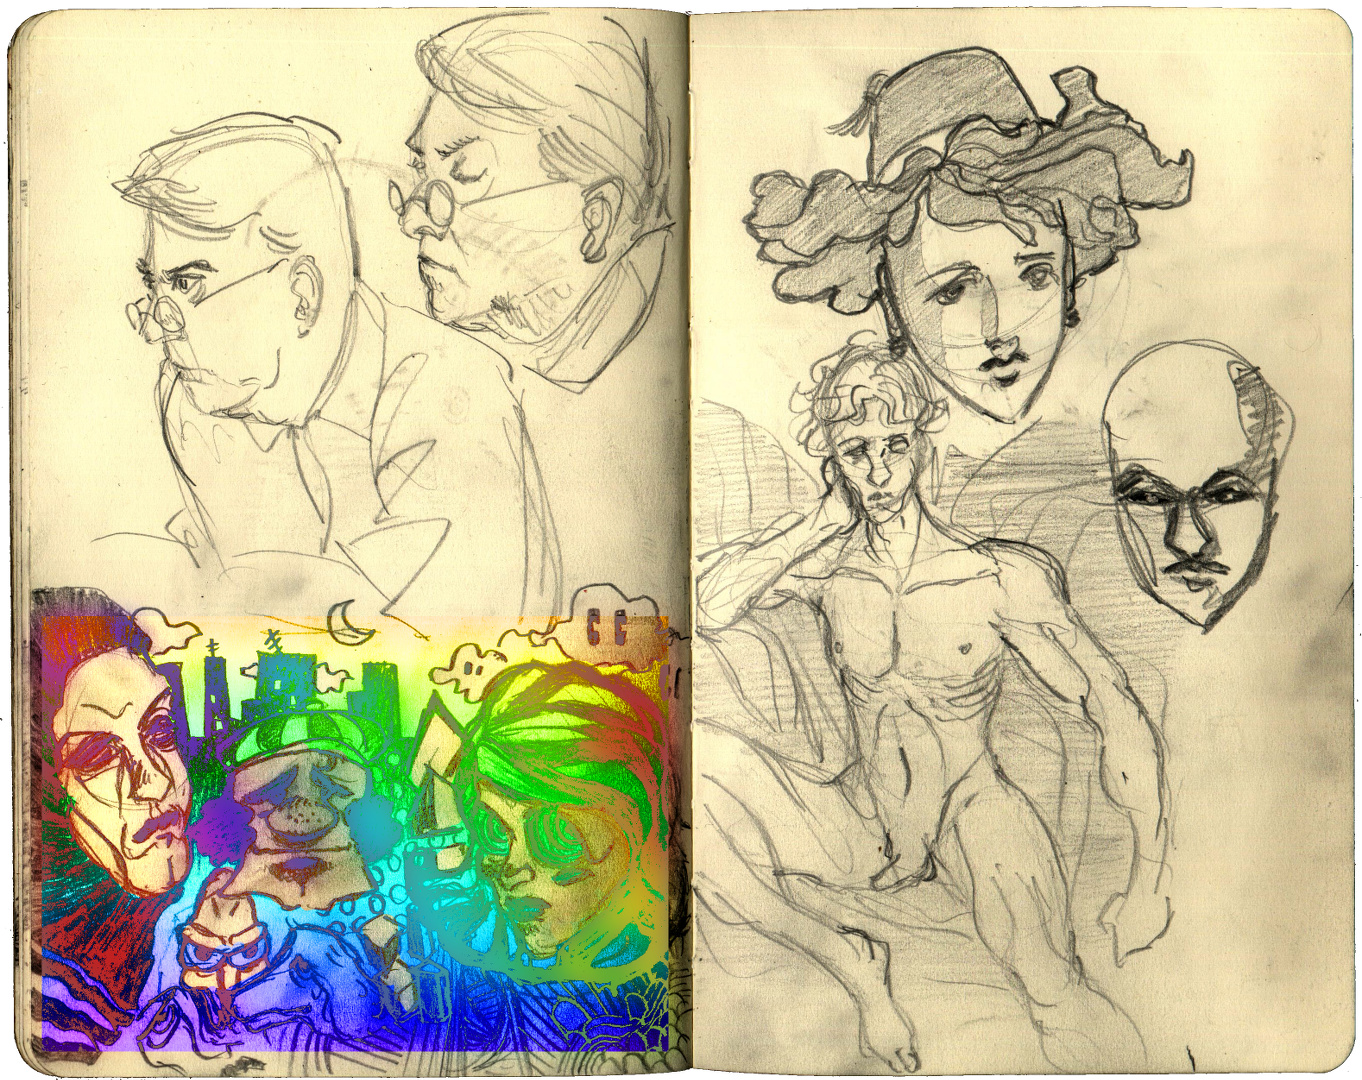 Some Sketchs 2015